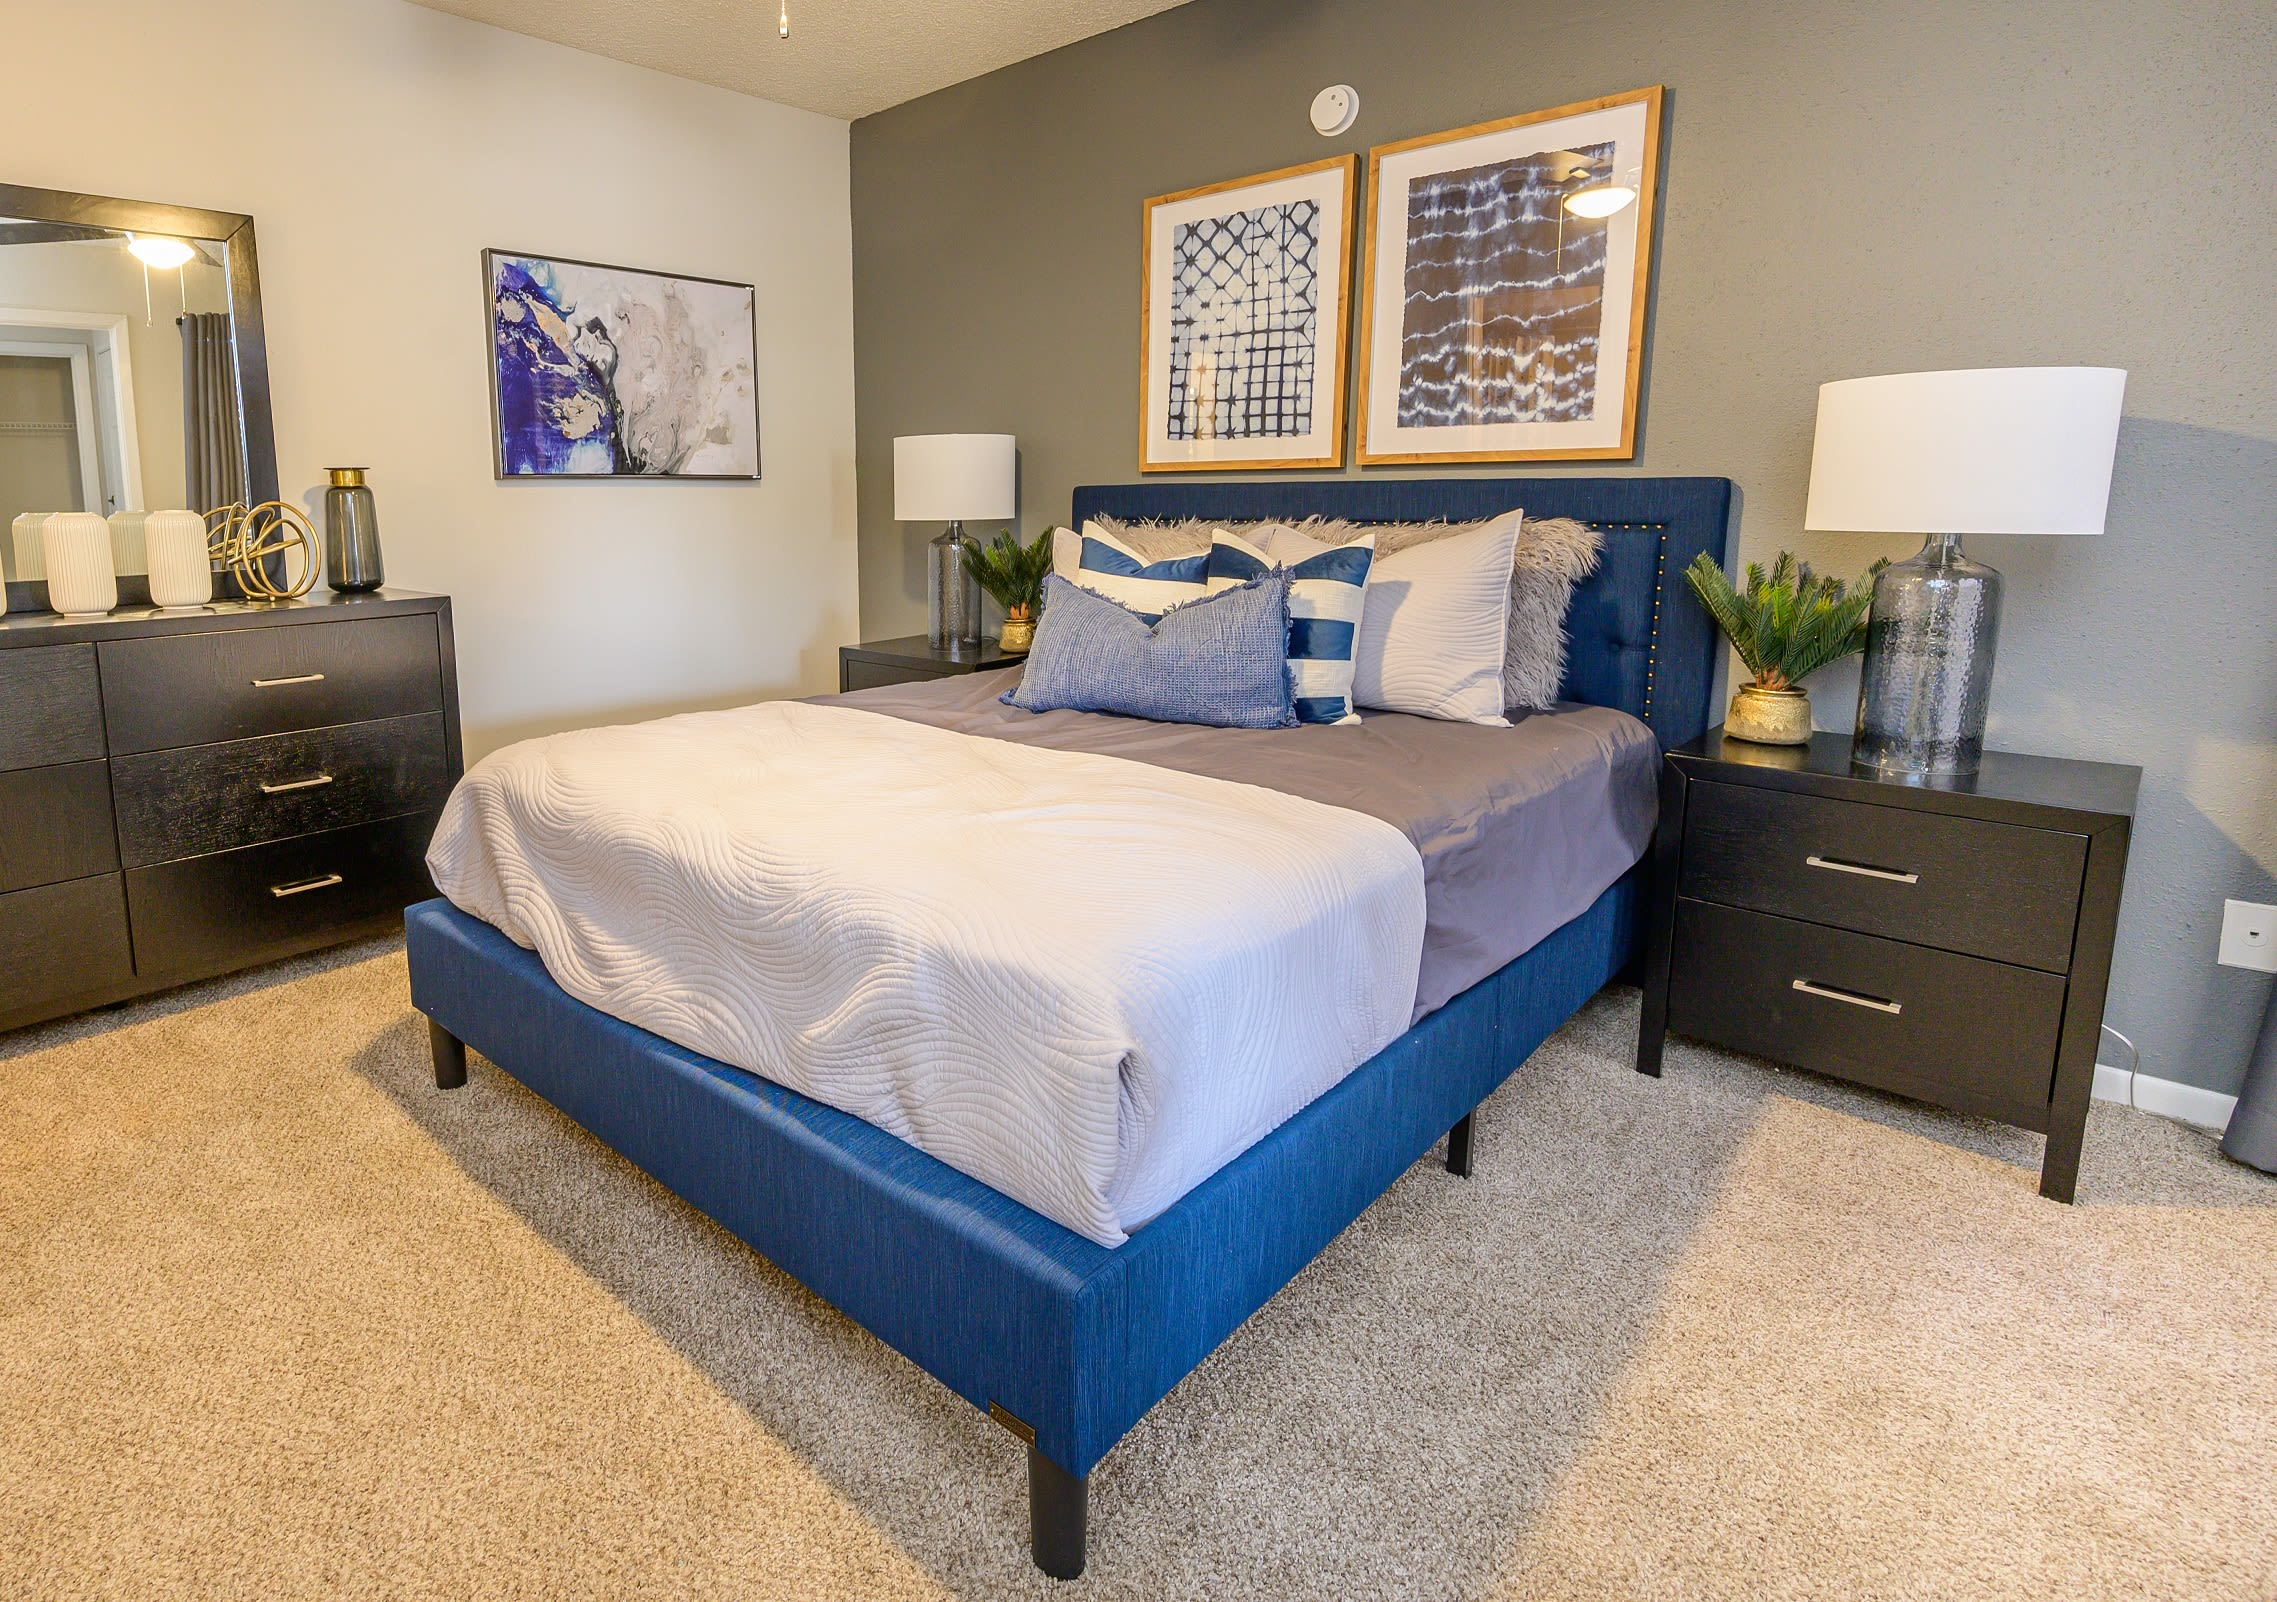 Main bedroom at Laurel Heights at Cityview in Fort Worth, Texas